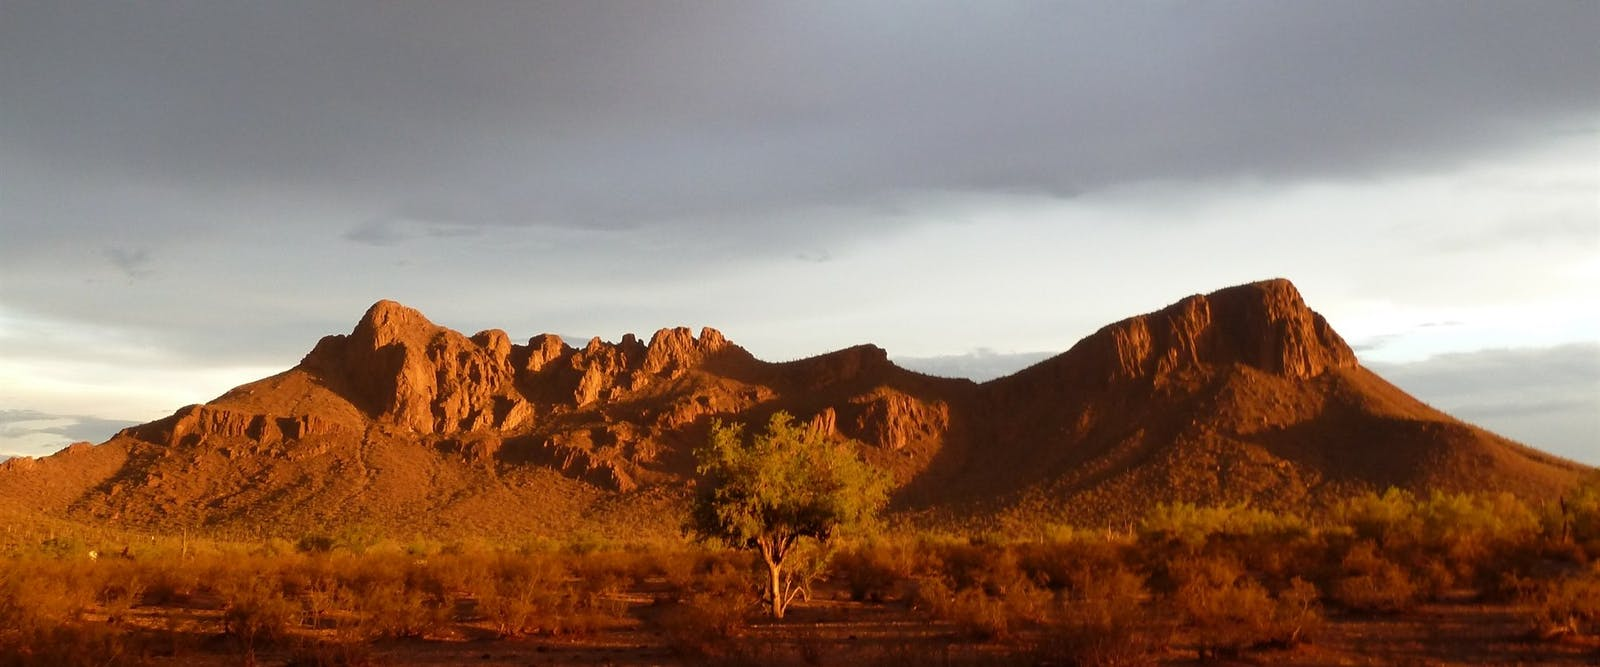 Landscape View At White Stallion Ranch, Arizona